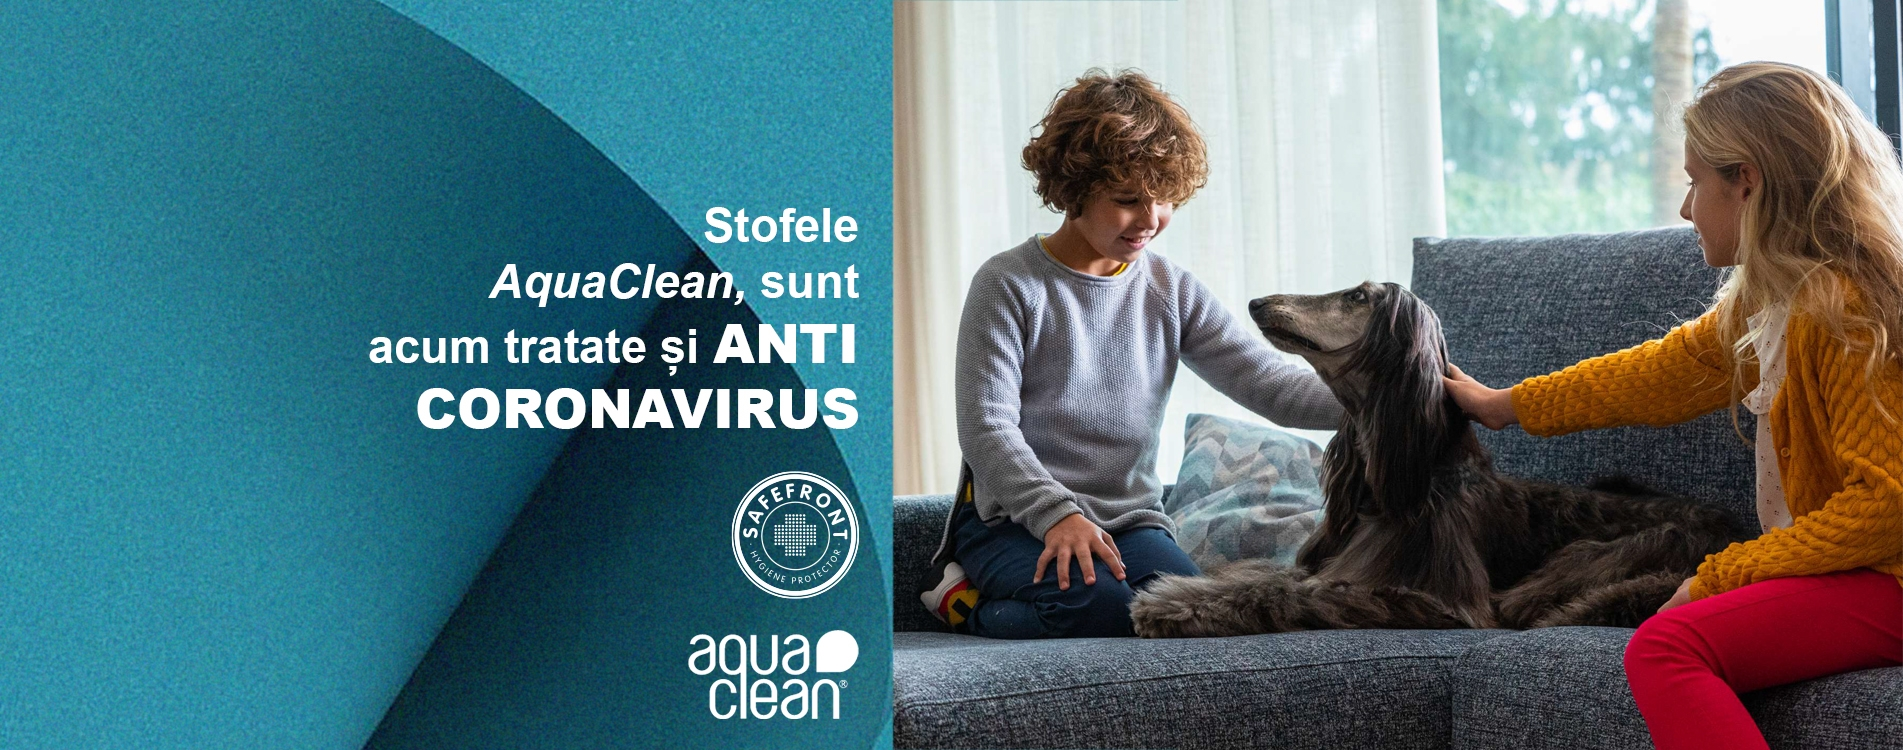 Stofe AquaClean anti-coronavirus